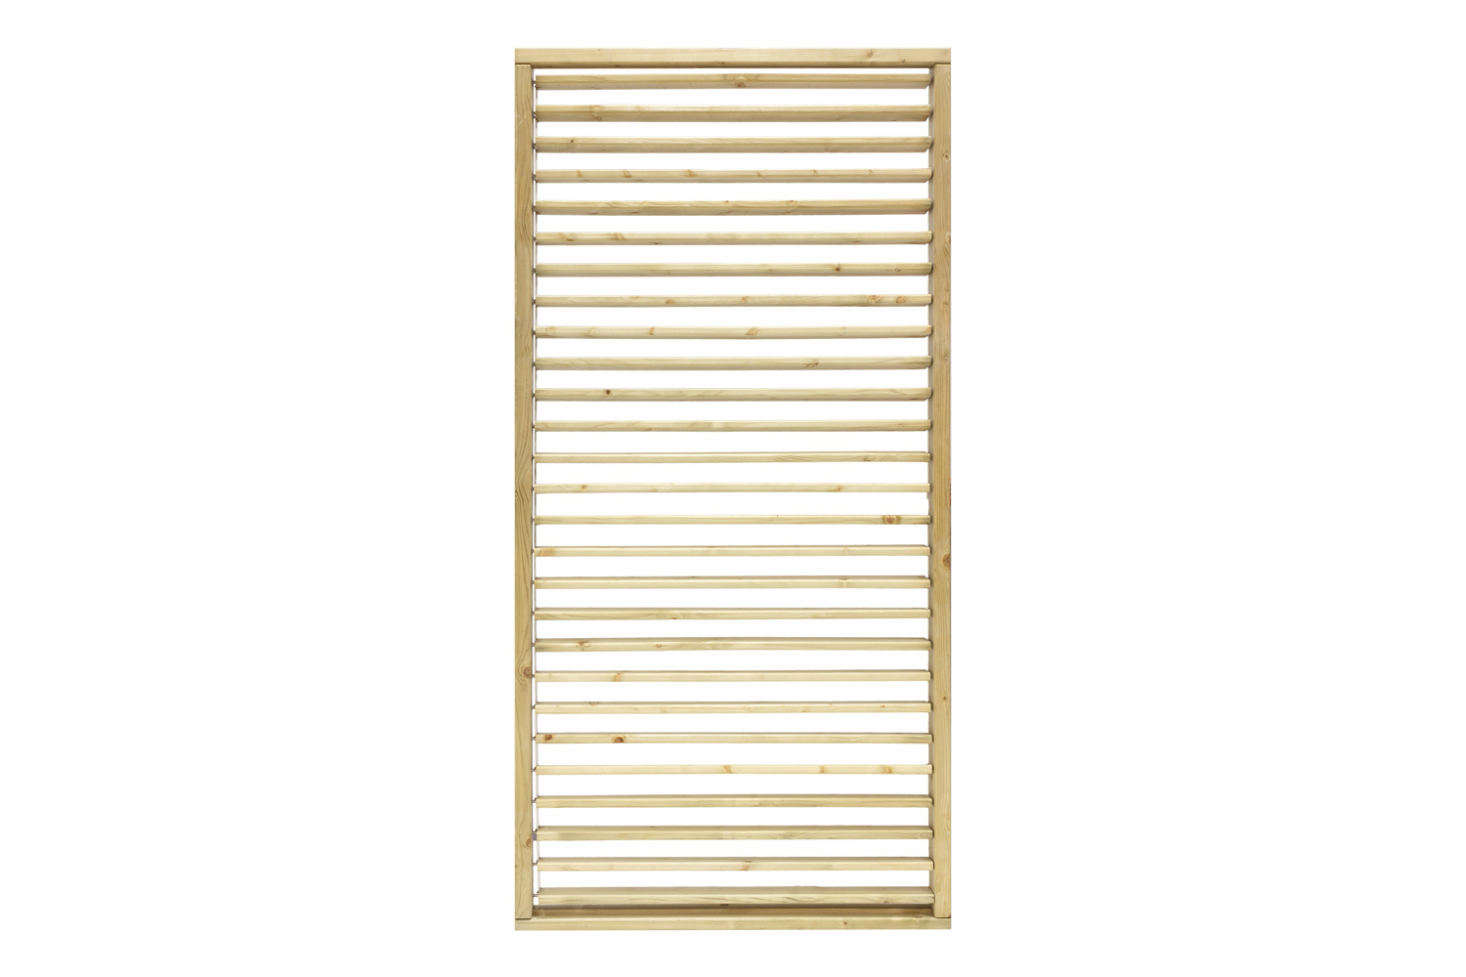 The Grange Adjustable Slat Garden Screen is a Venetian effect slatted screen with slats that open and close; £136.65 at Kebur.